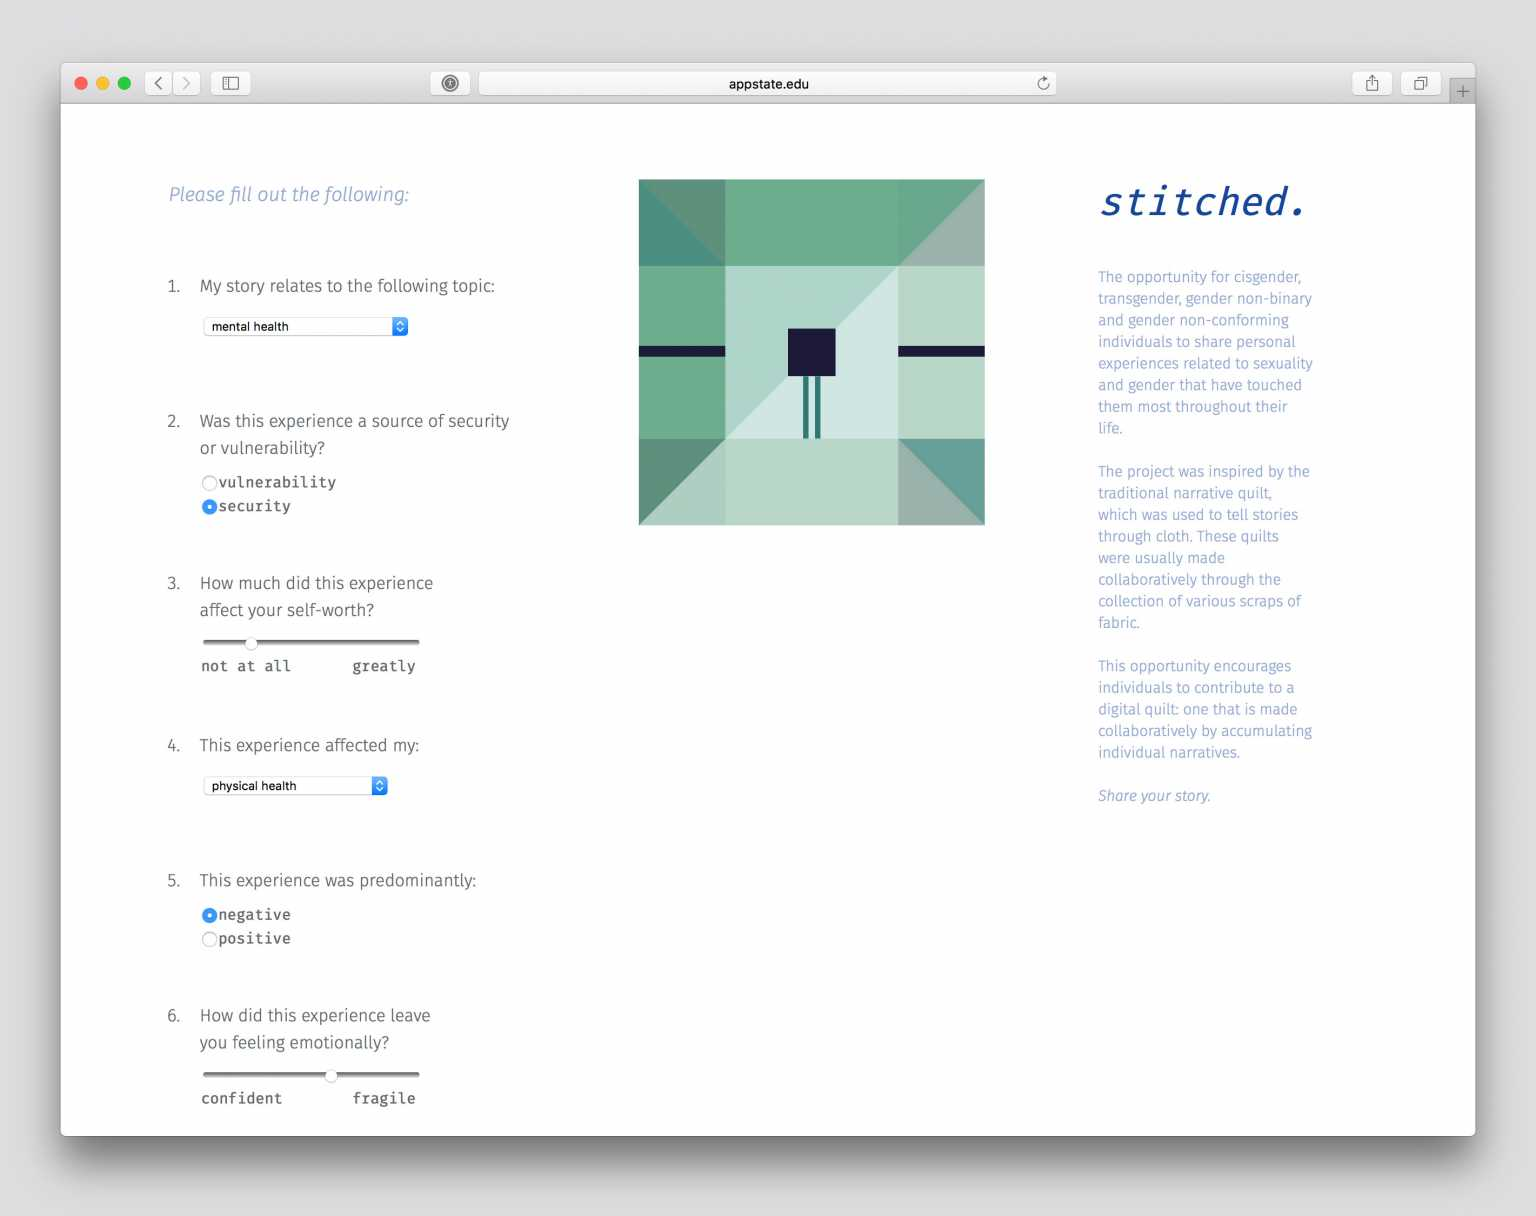 Stitched, a web-based, interactive experience inspired by the notion of touch and the narrative quilt